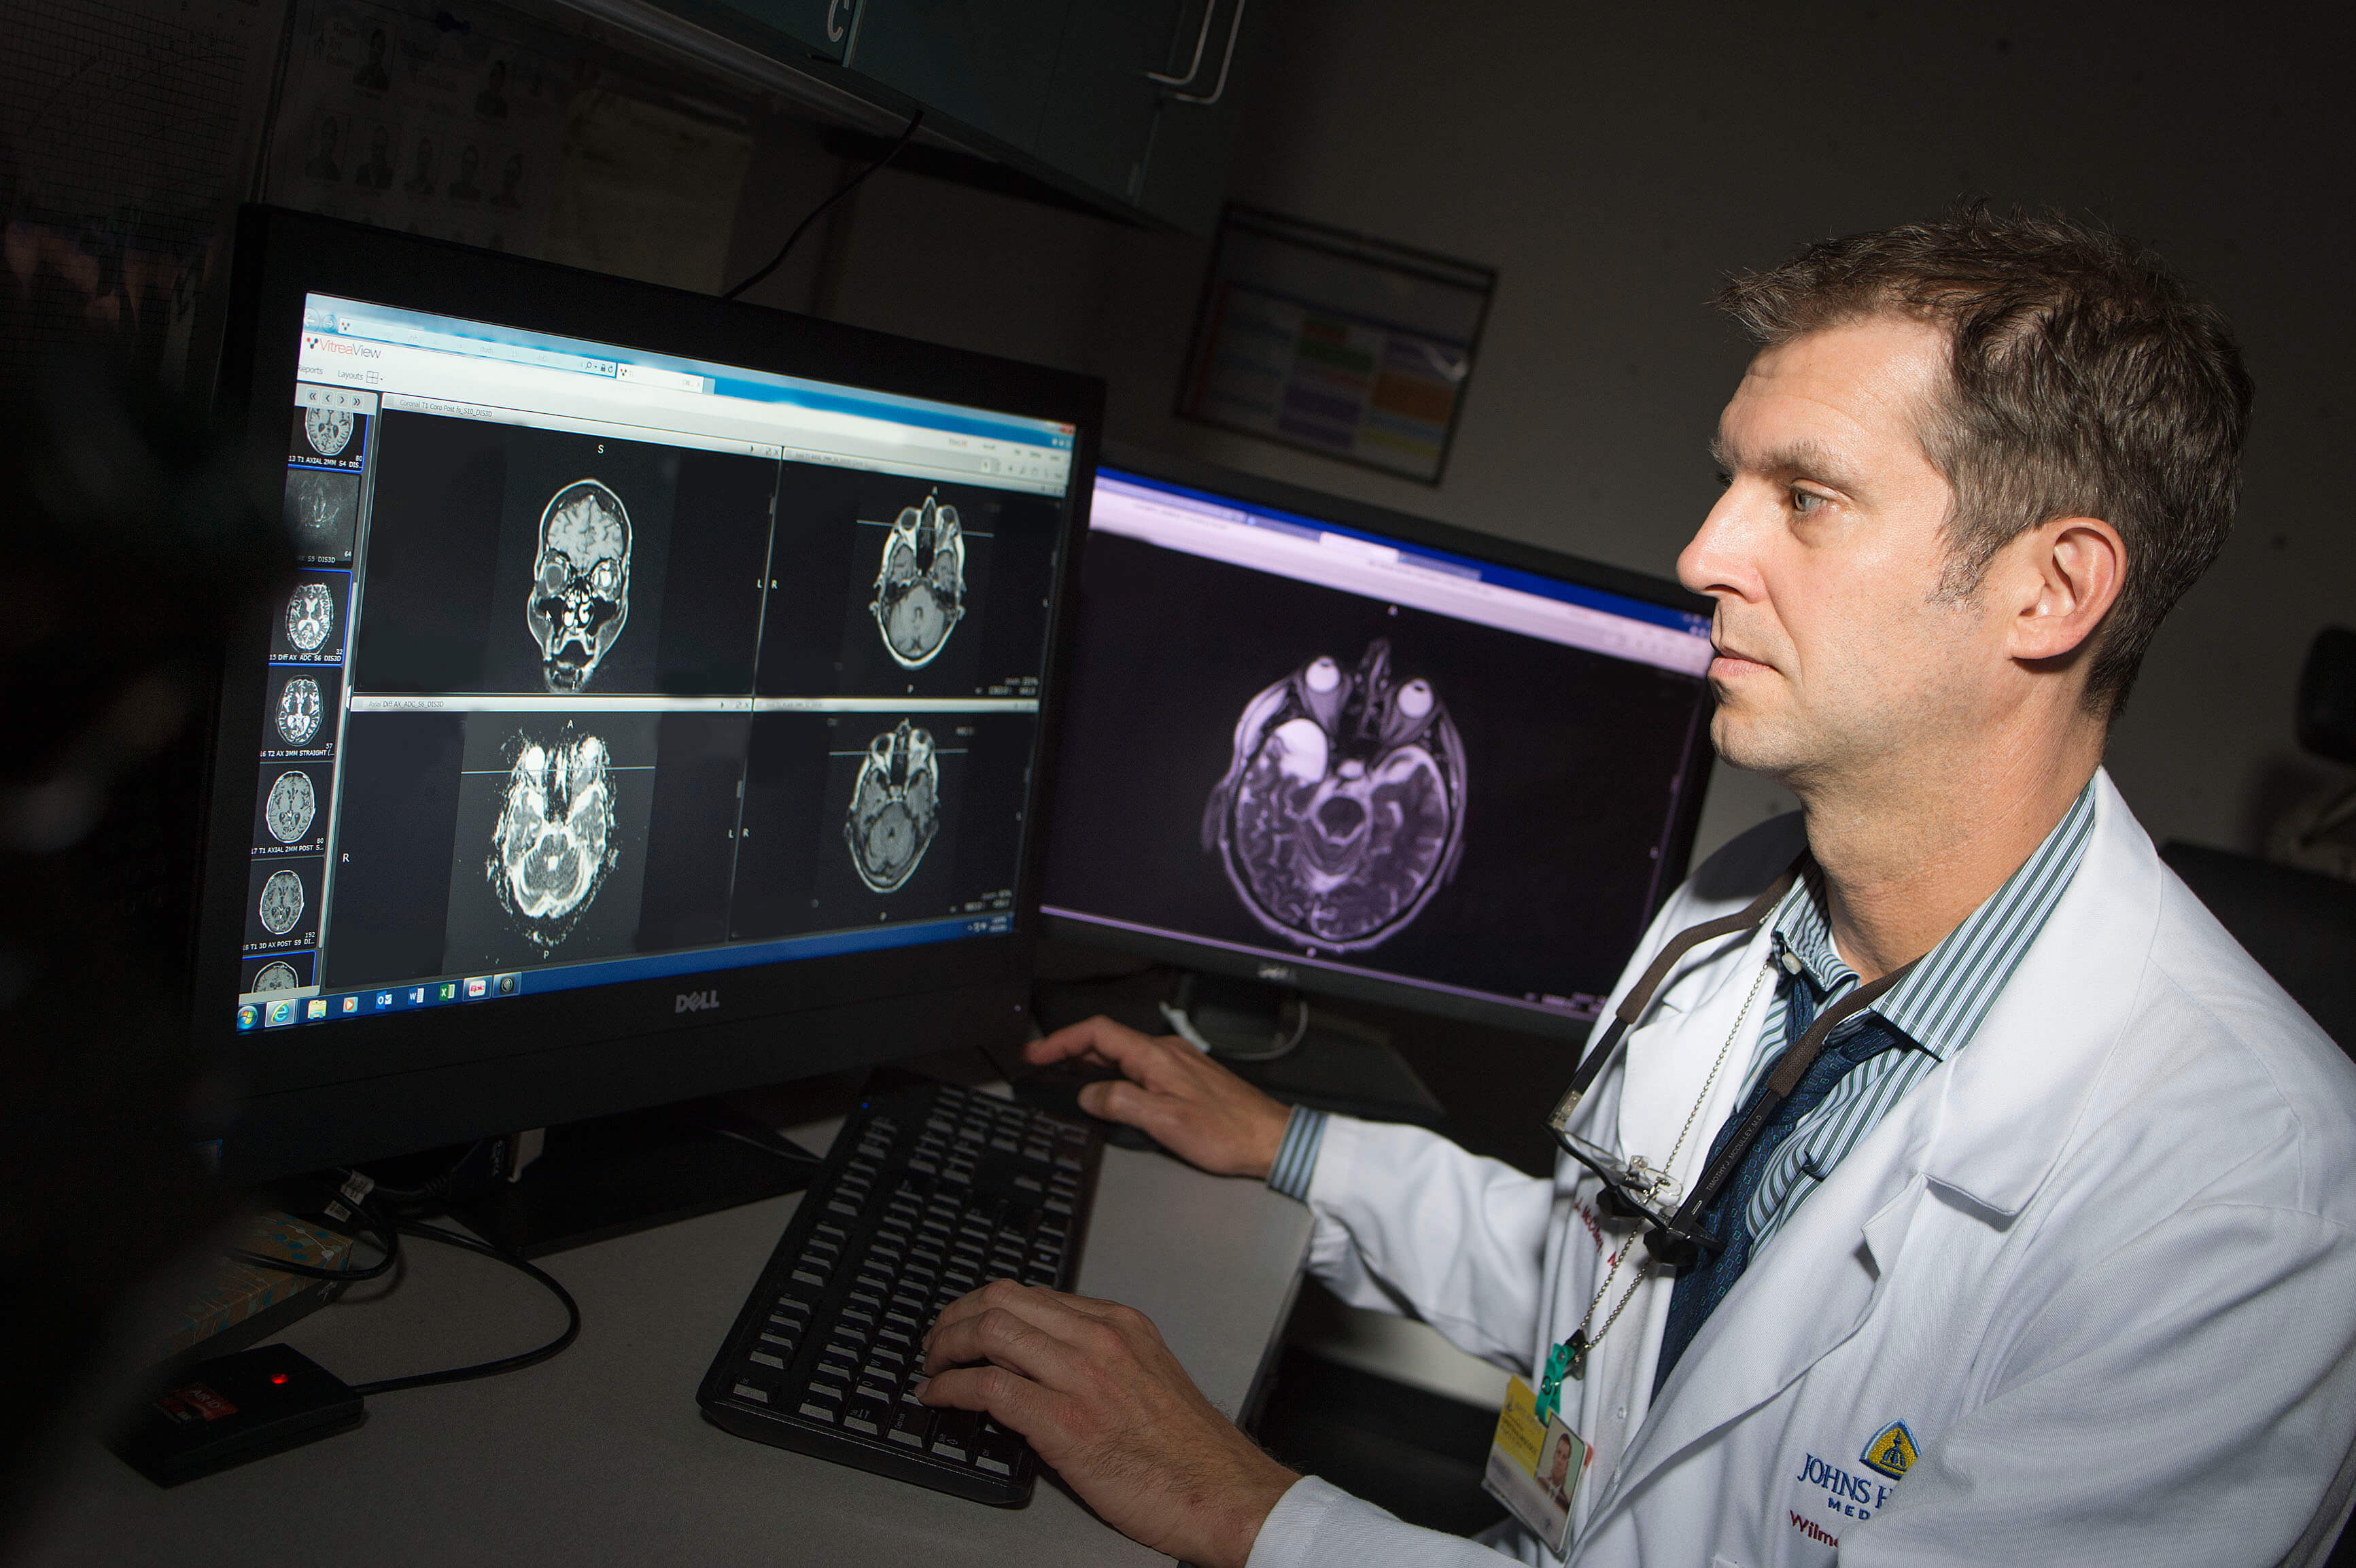 Dr. McCulley examines MRI scans